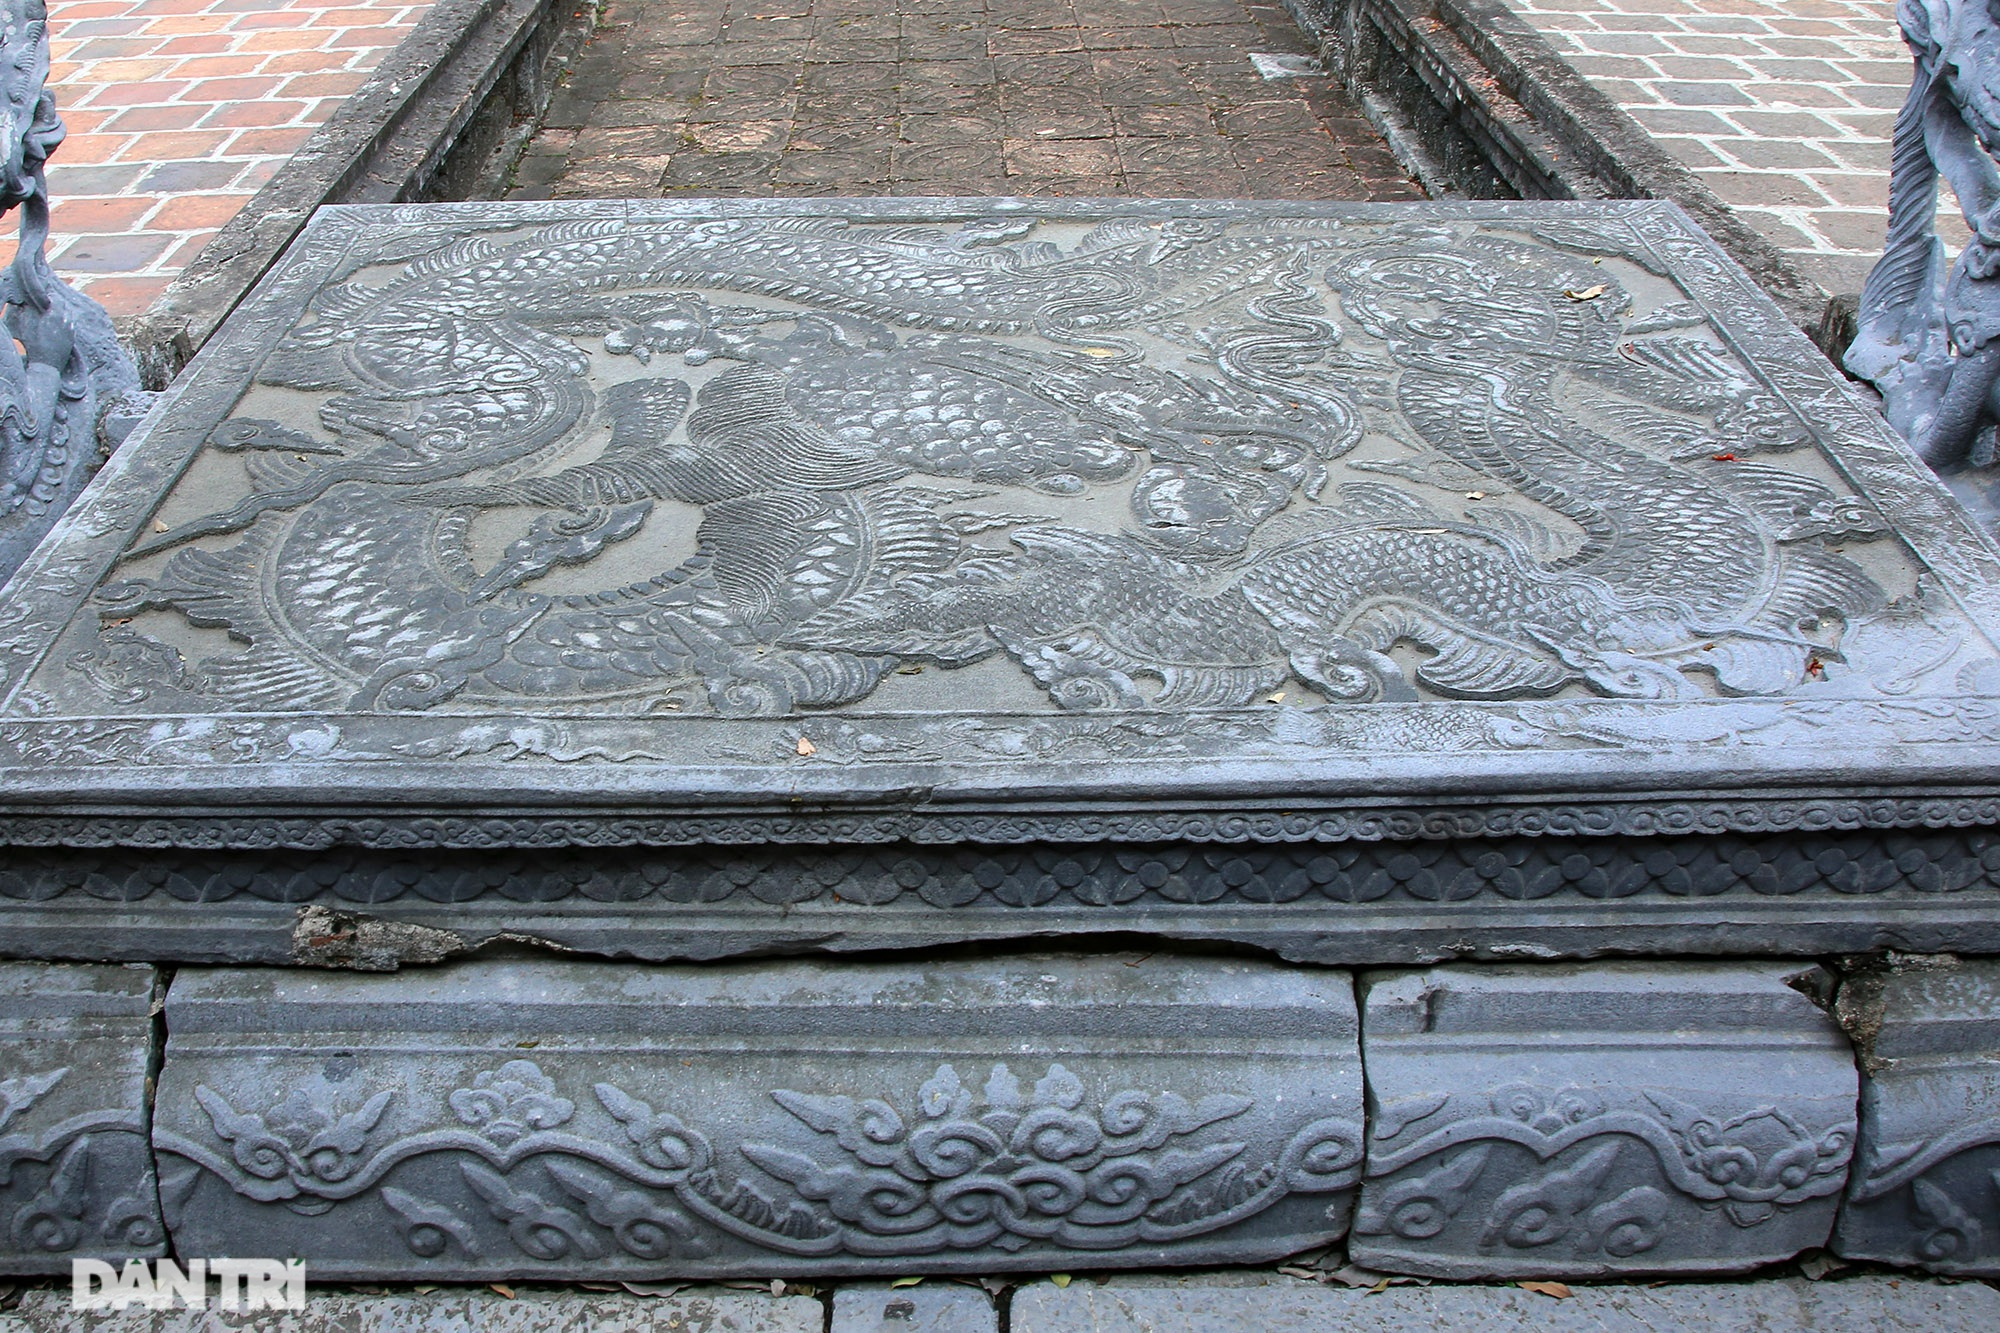 The unique stone sieve in Vietnam carved with the image of a buffalo, a mouse compared with a dragon - 4